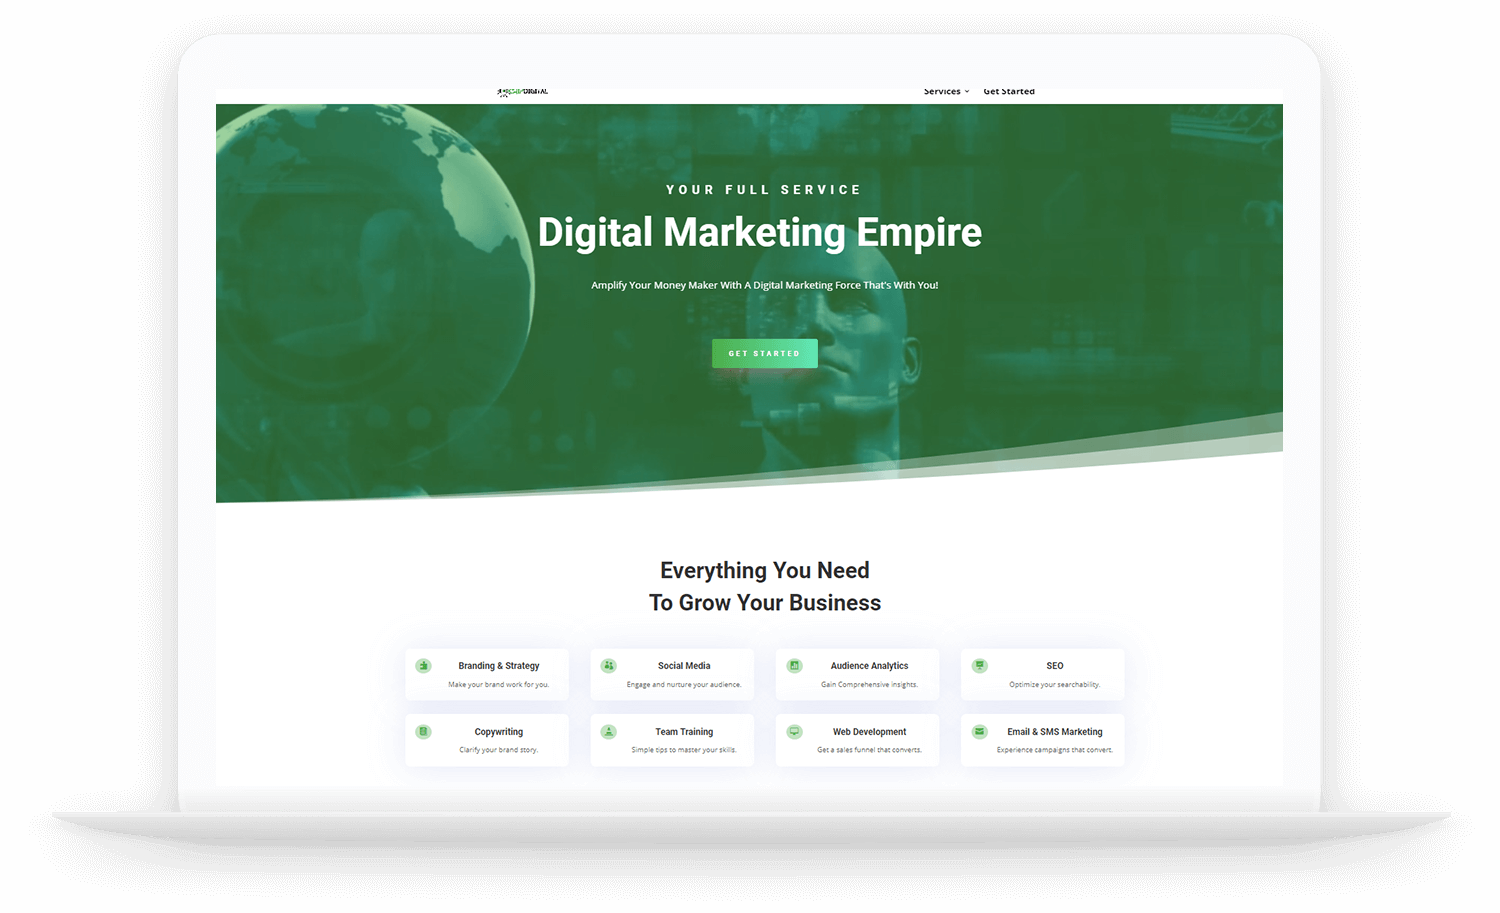 CHIP-DIGITAL-Your-Full-Service-Digital-Marketing-Empire---Branding-and-Strategy---Section